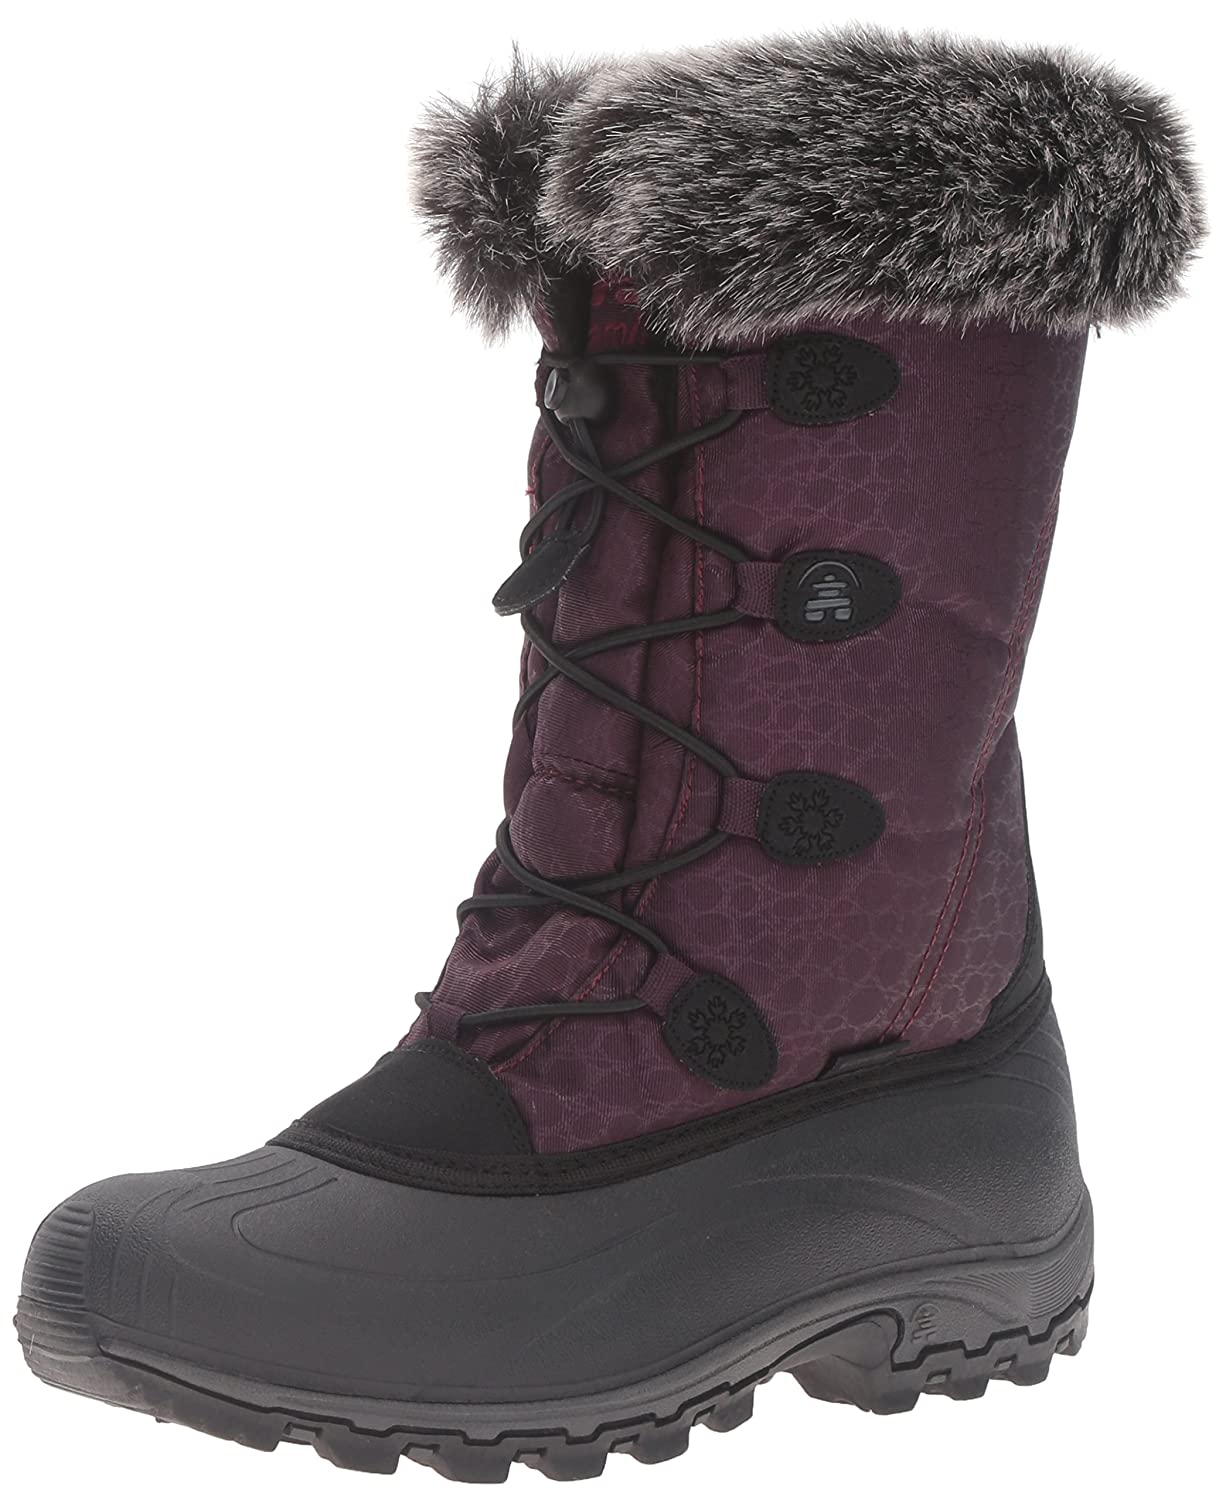 Kamik Women's Momentum Snow Boot B01M048LRR 8.5 B(M) US|Burgundy